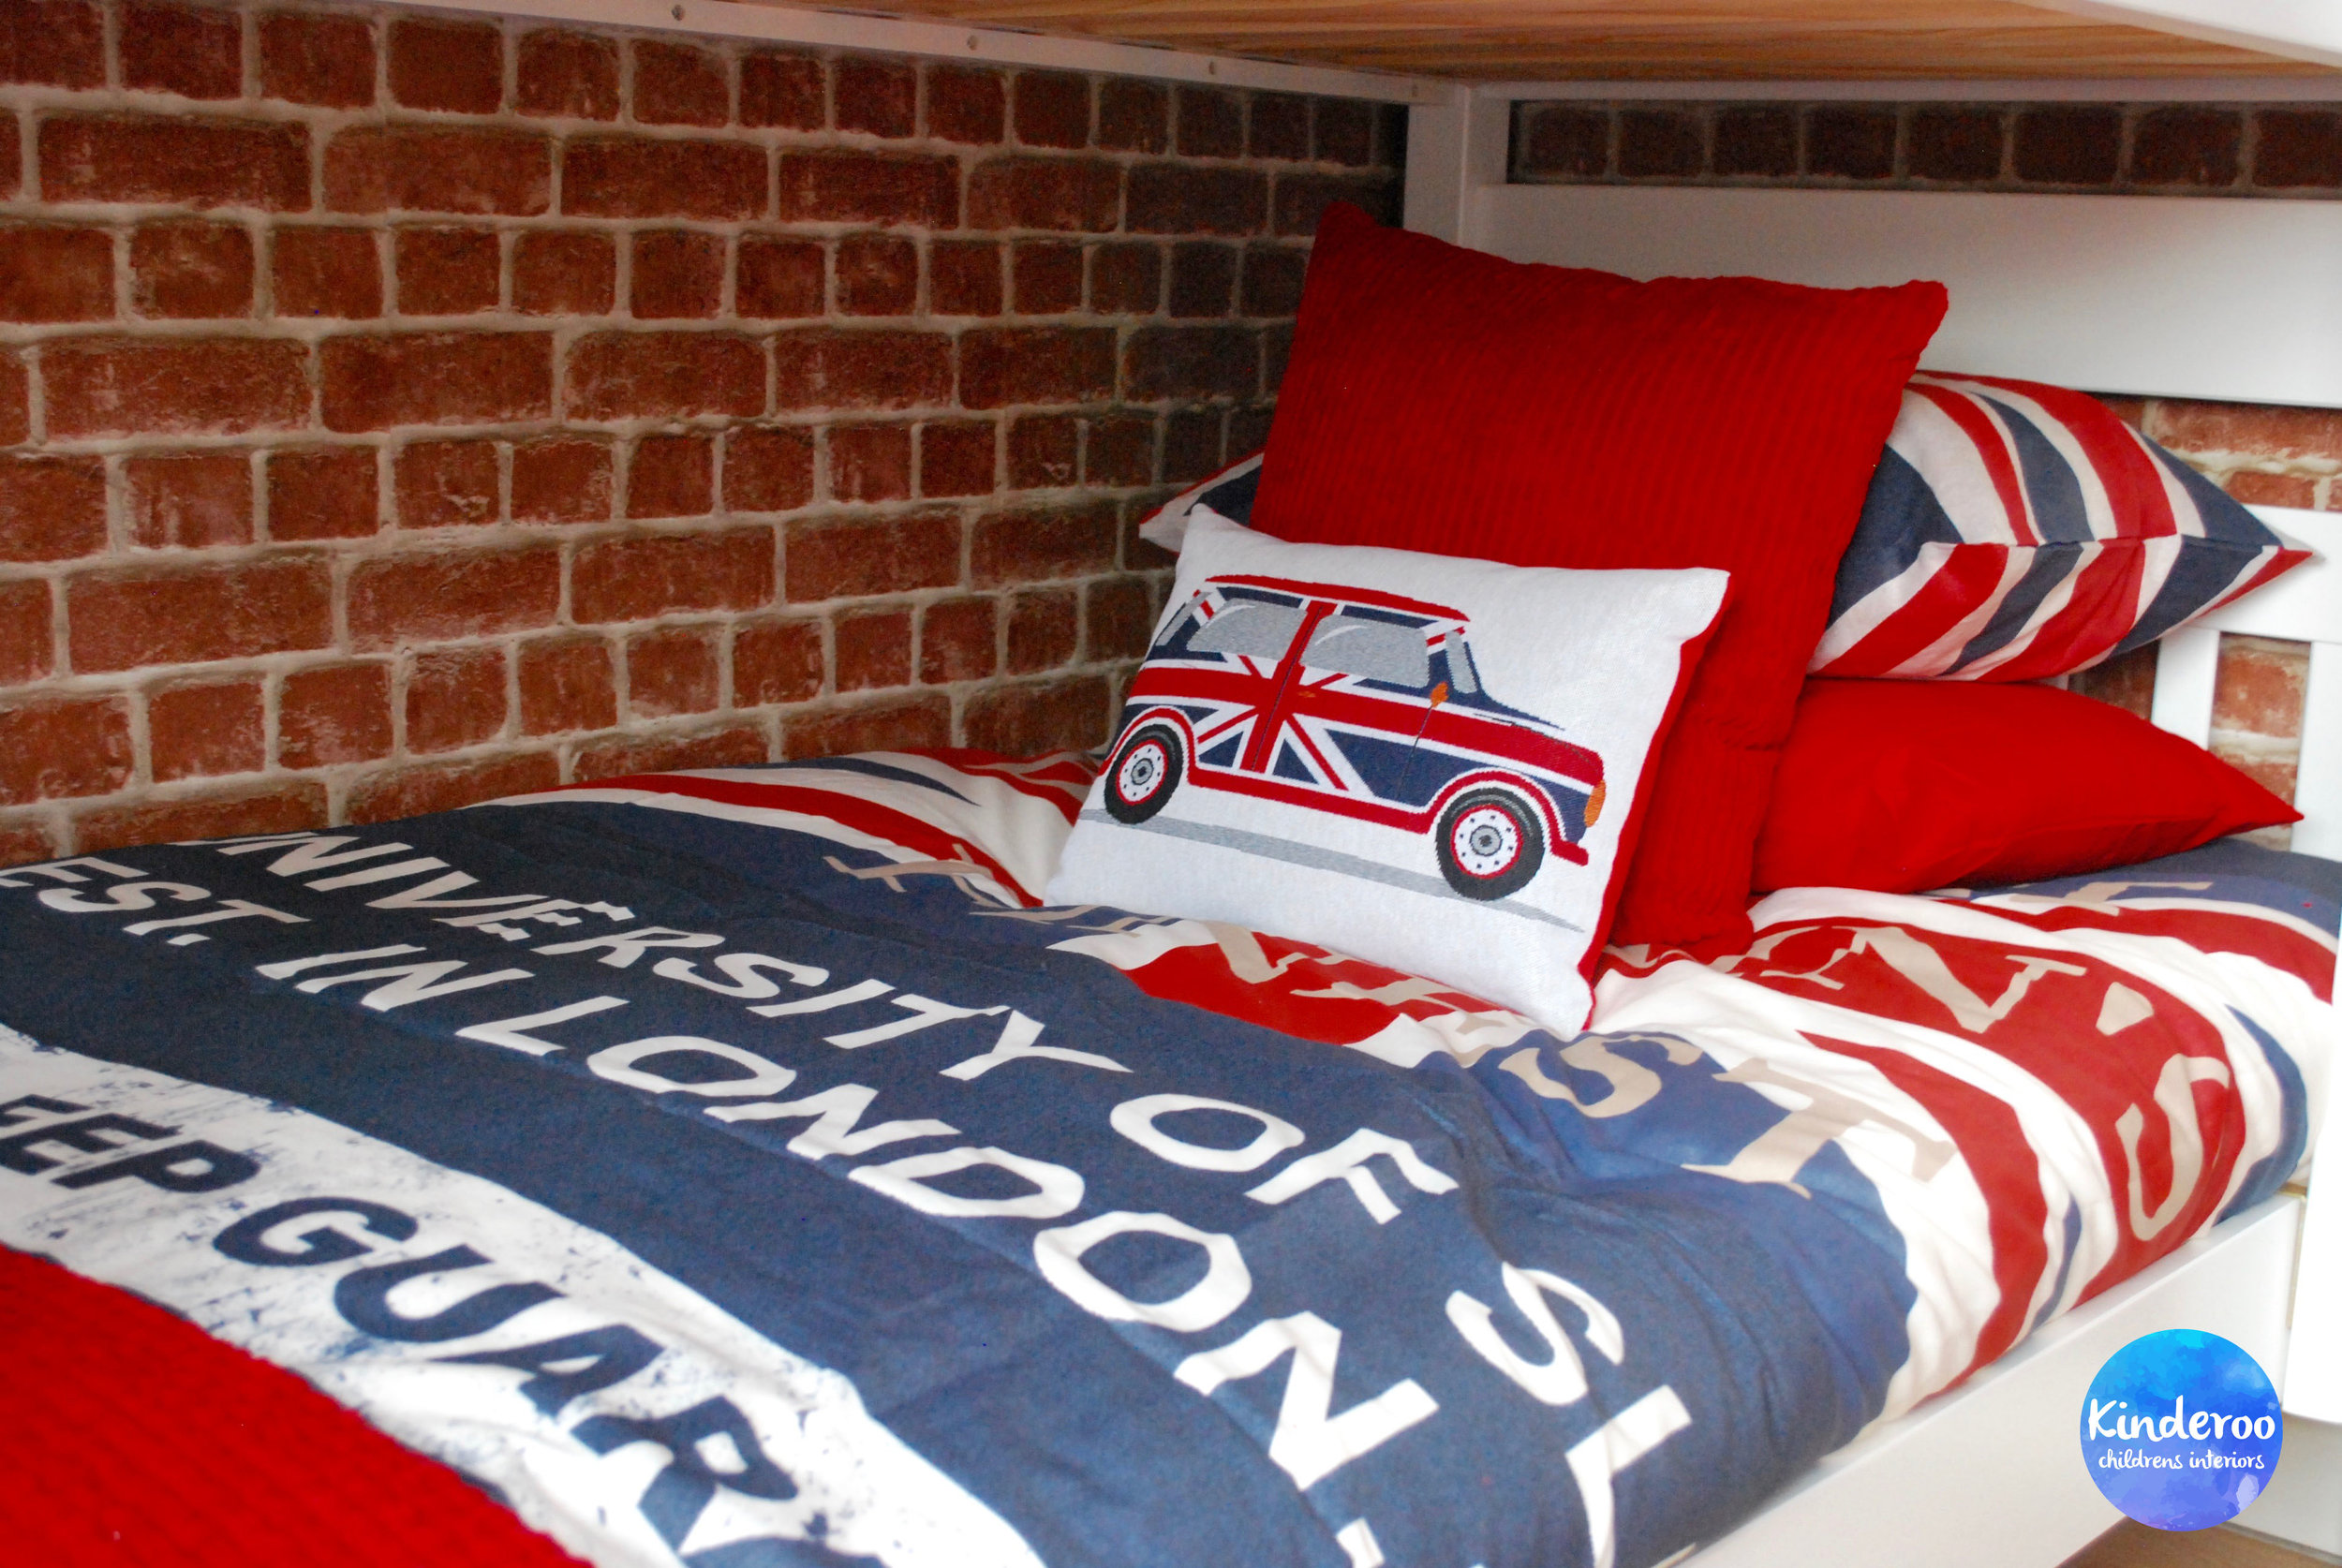 union jack british teen bedroom makeover london bedding by kinderoo childrens interiors for make a wish uk 1